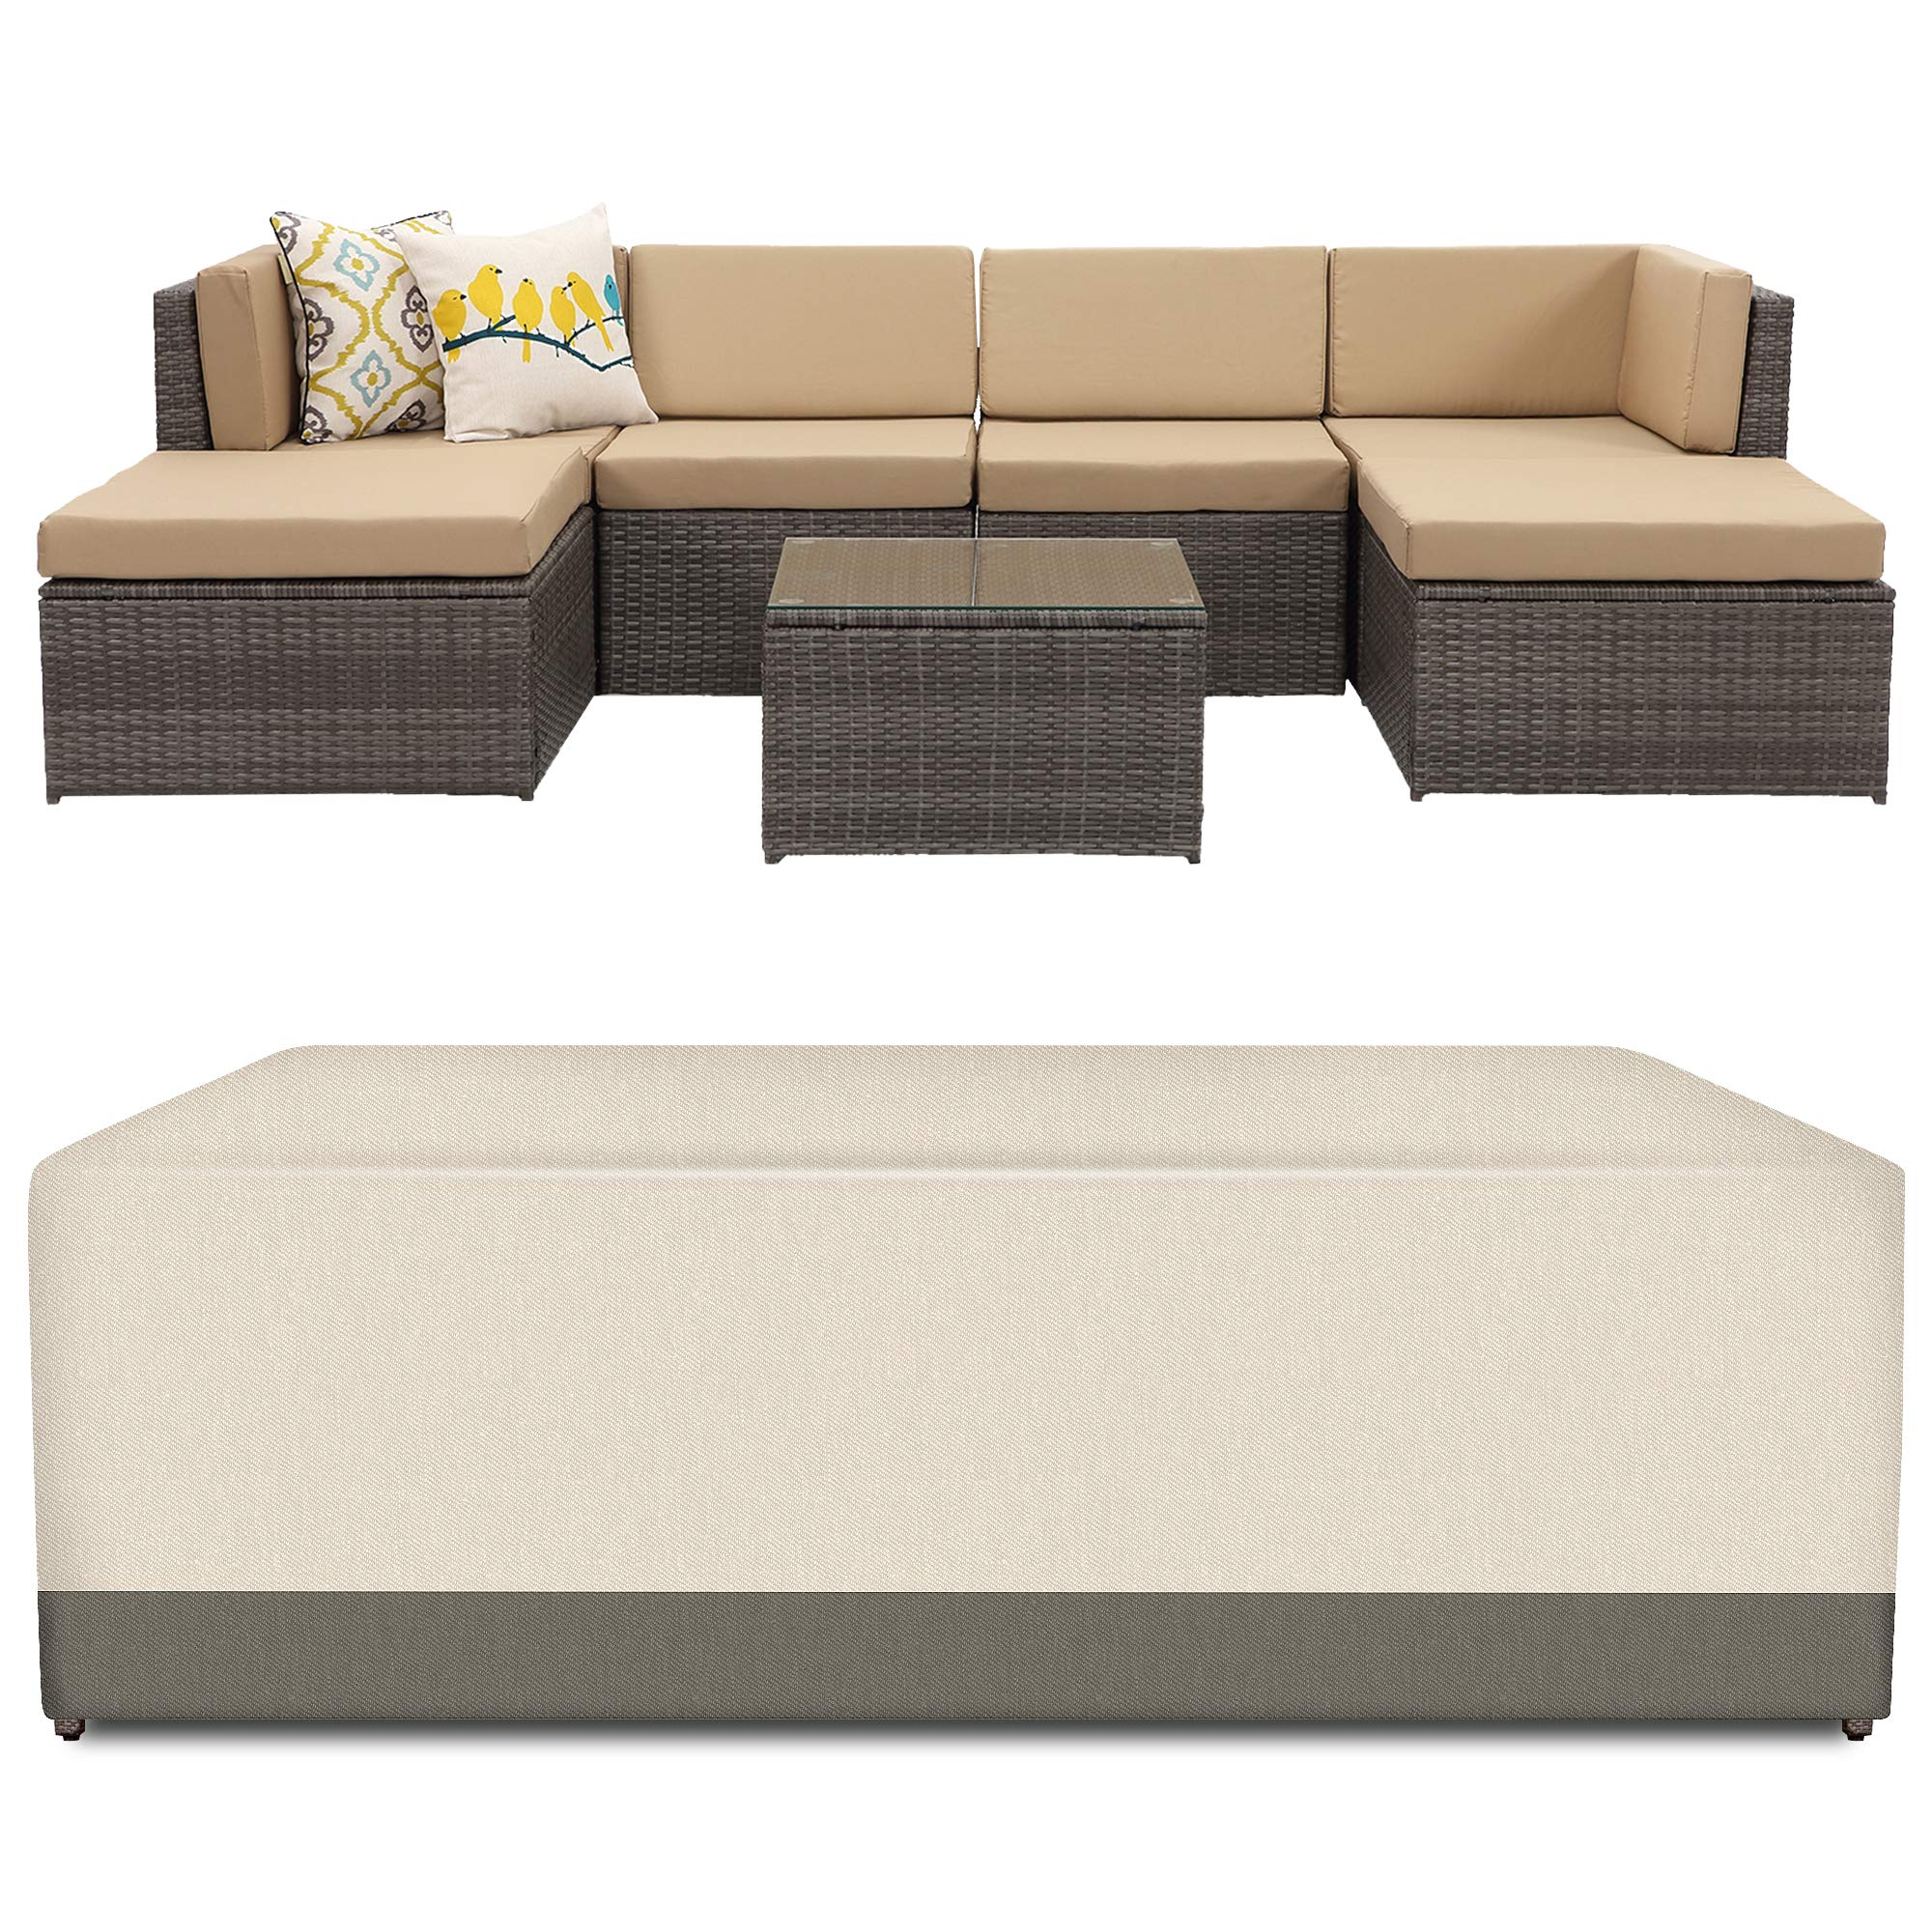 Wisteria Lane Veranda Patio Furniture Waterproof Durable Cover,Suit for 7 Piece Outdoor Sectional Sofa (Beige & Brown) by Wisteria Lane